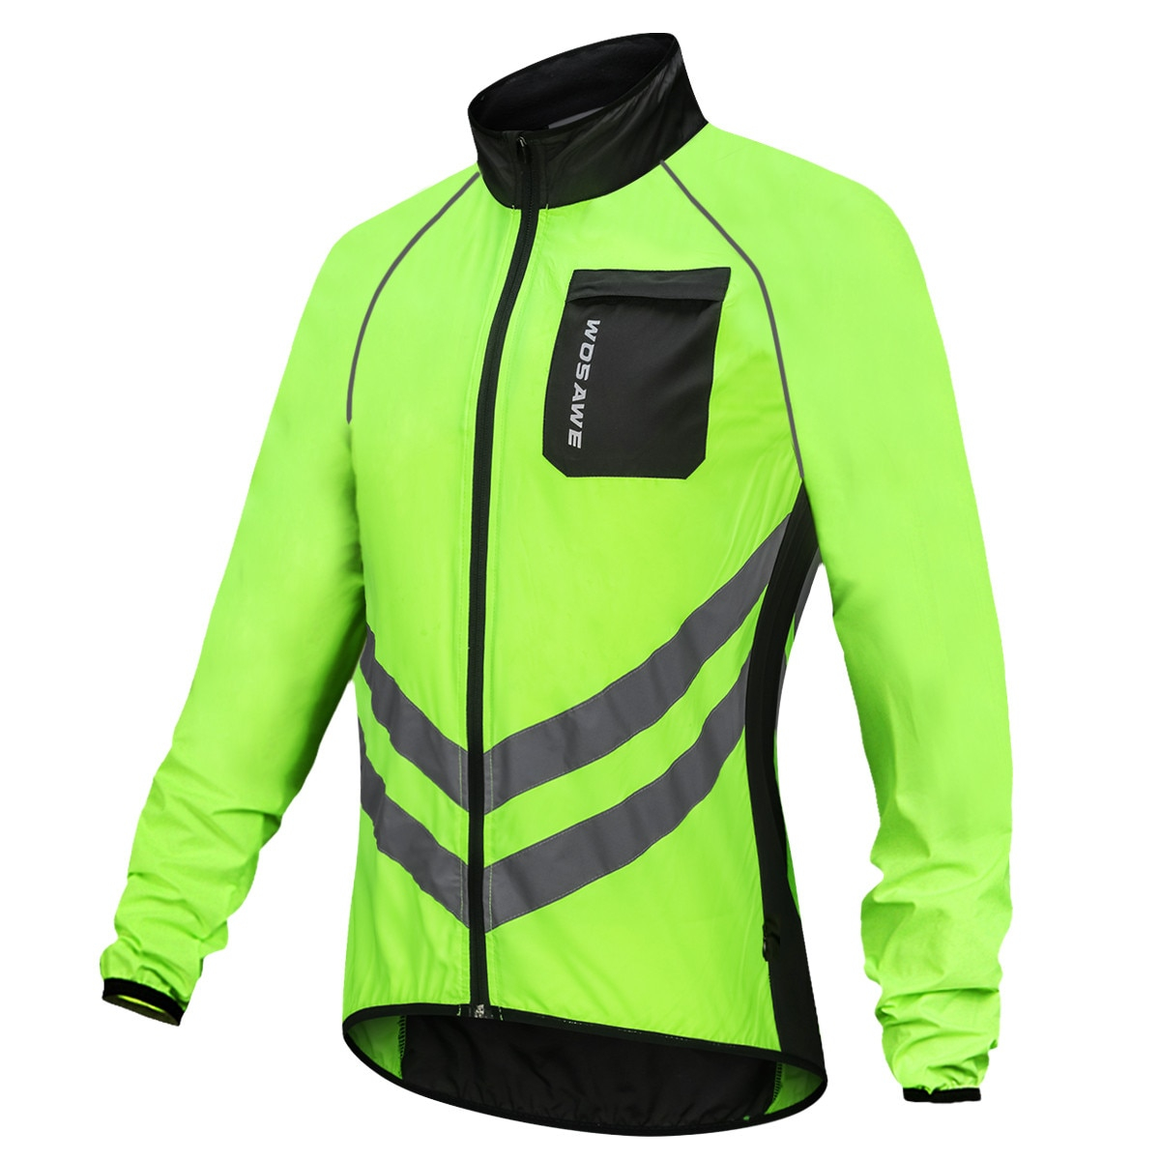 Reflective Windproof  Jacket and Vest